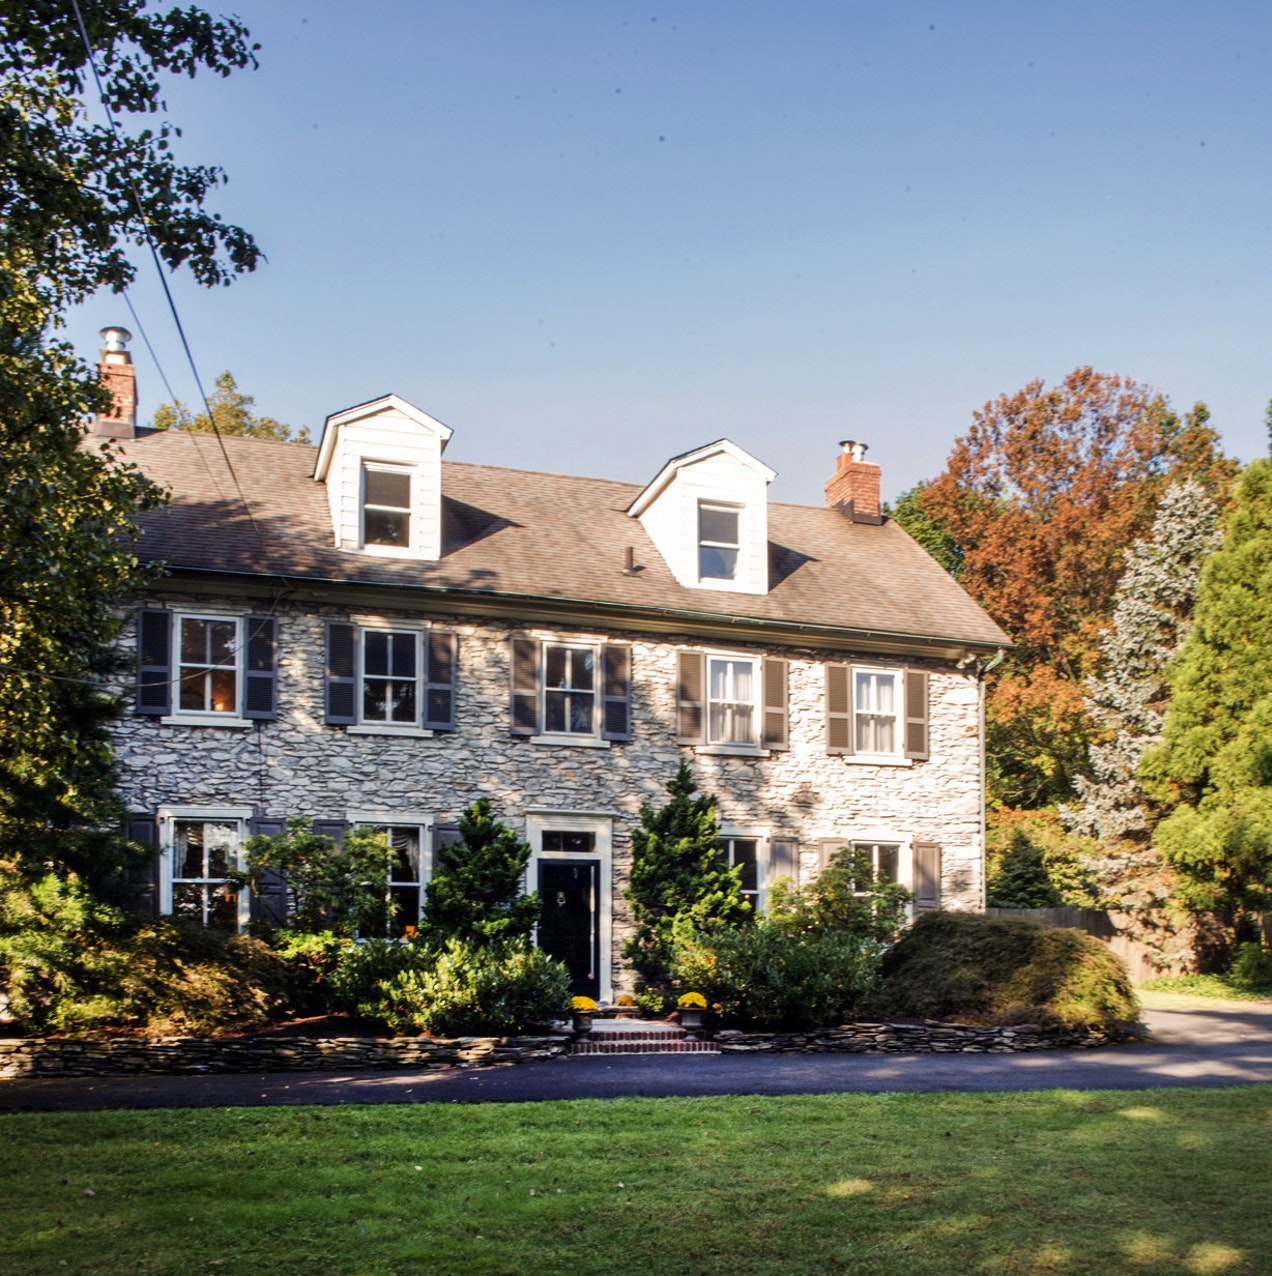 House of the Week: Stunning Home with Rich History in Glenside